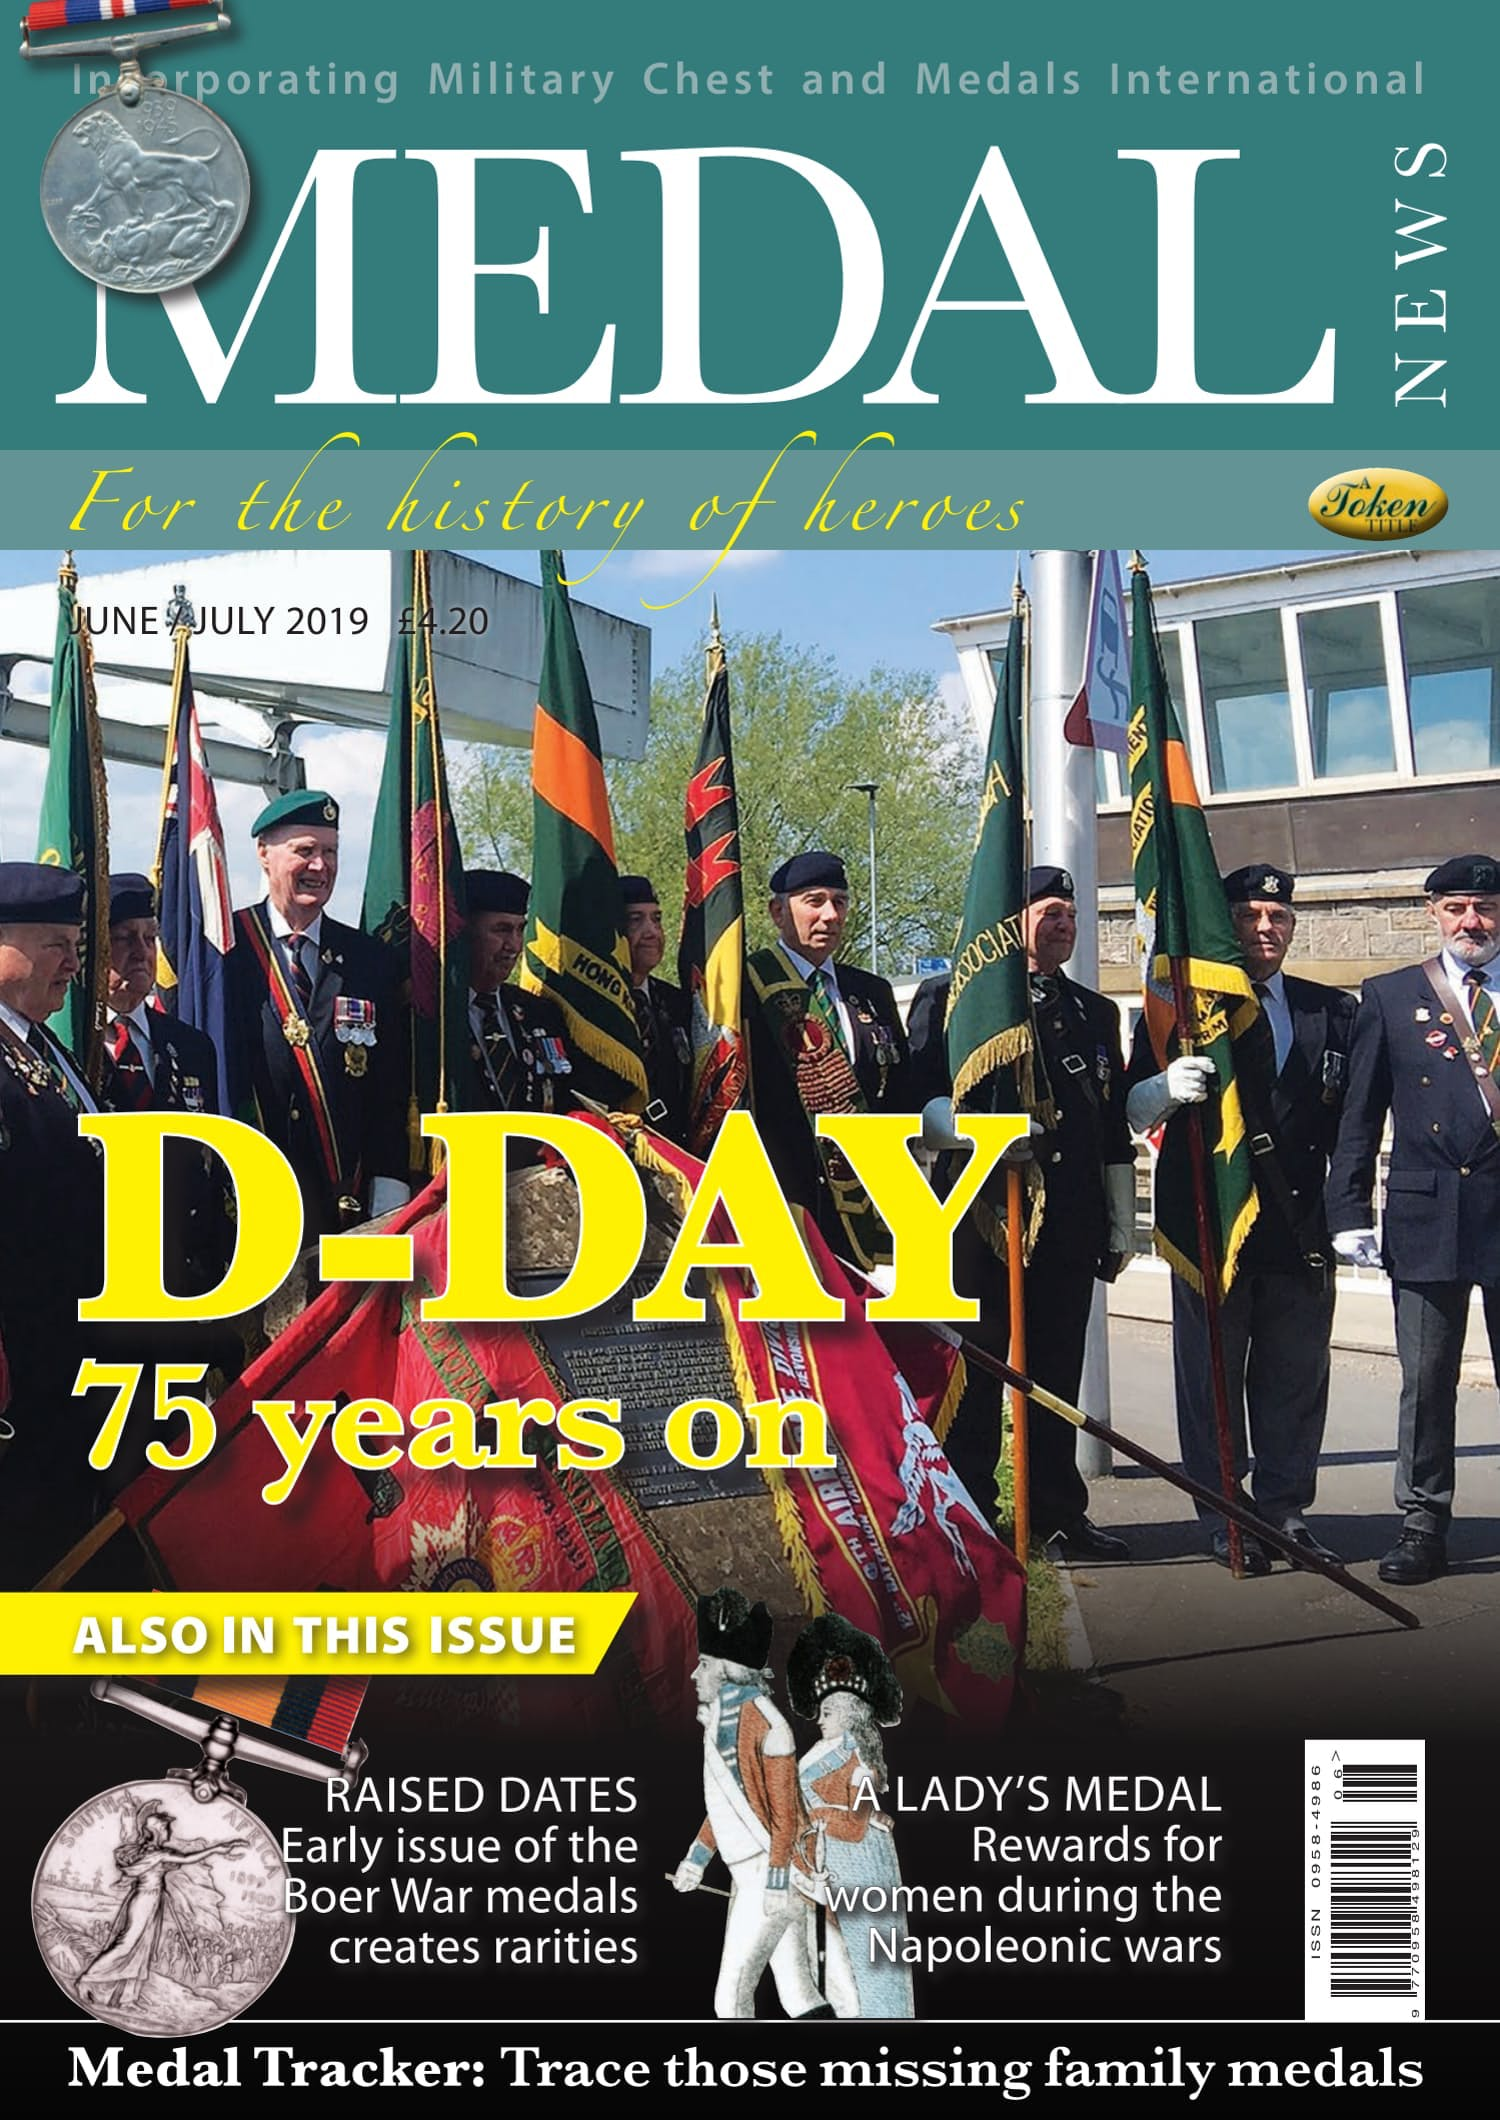 The front cover of Medal News, June 2019 - Volume 57, Number 6